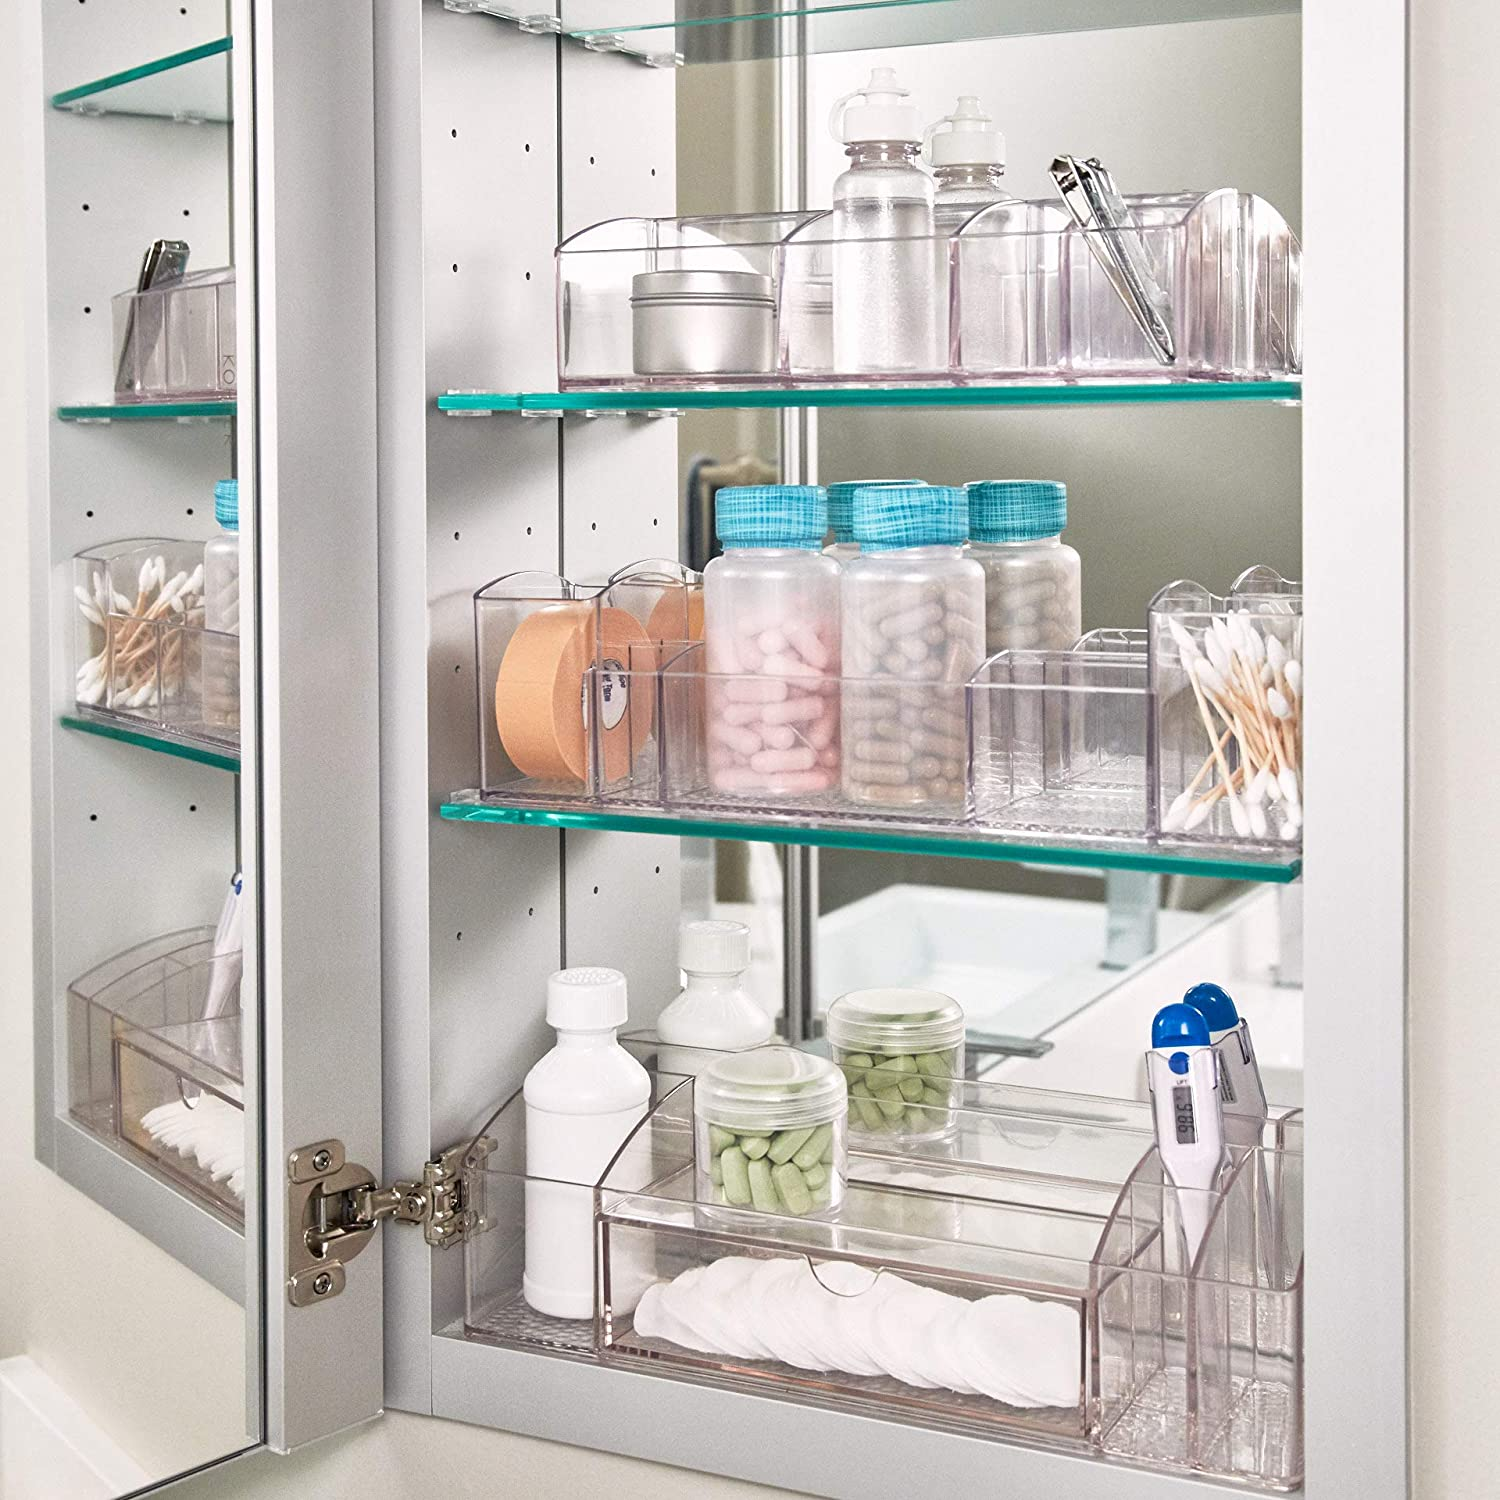 Amazon Com Idesign 43030 Med 12 Plastic Divided Vanity Medication And Bathroom Accessory 12 X 3 X 3 5 Multi Level Organizer Home Kitchen